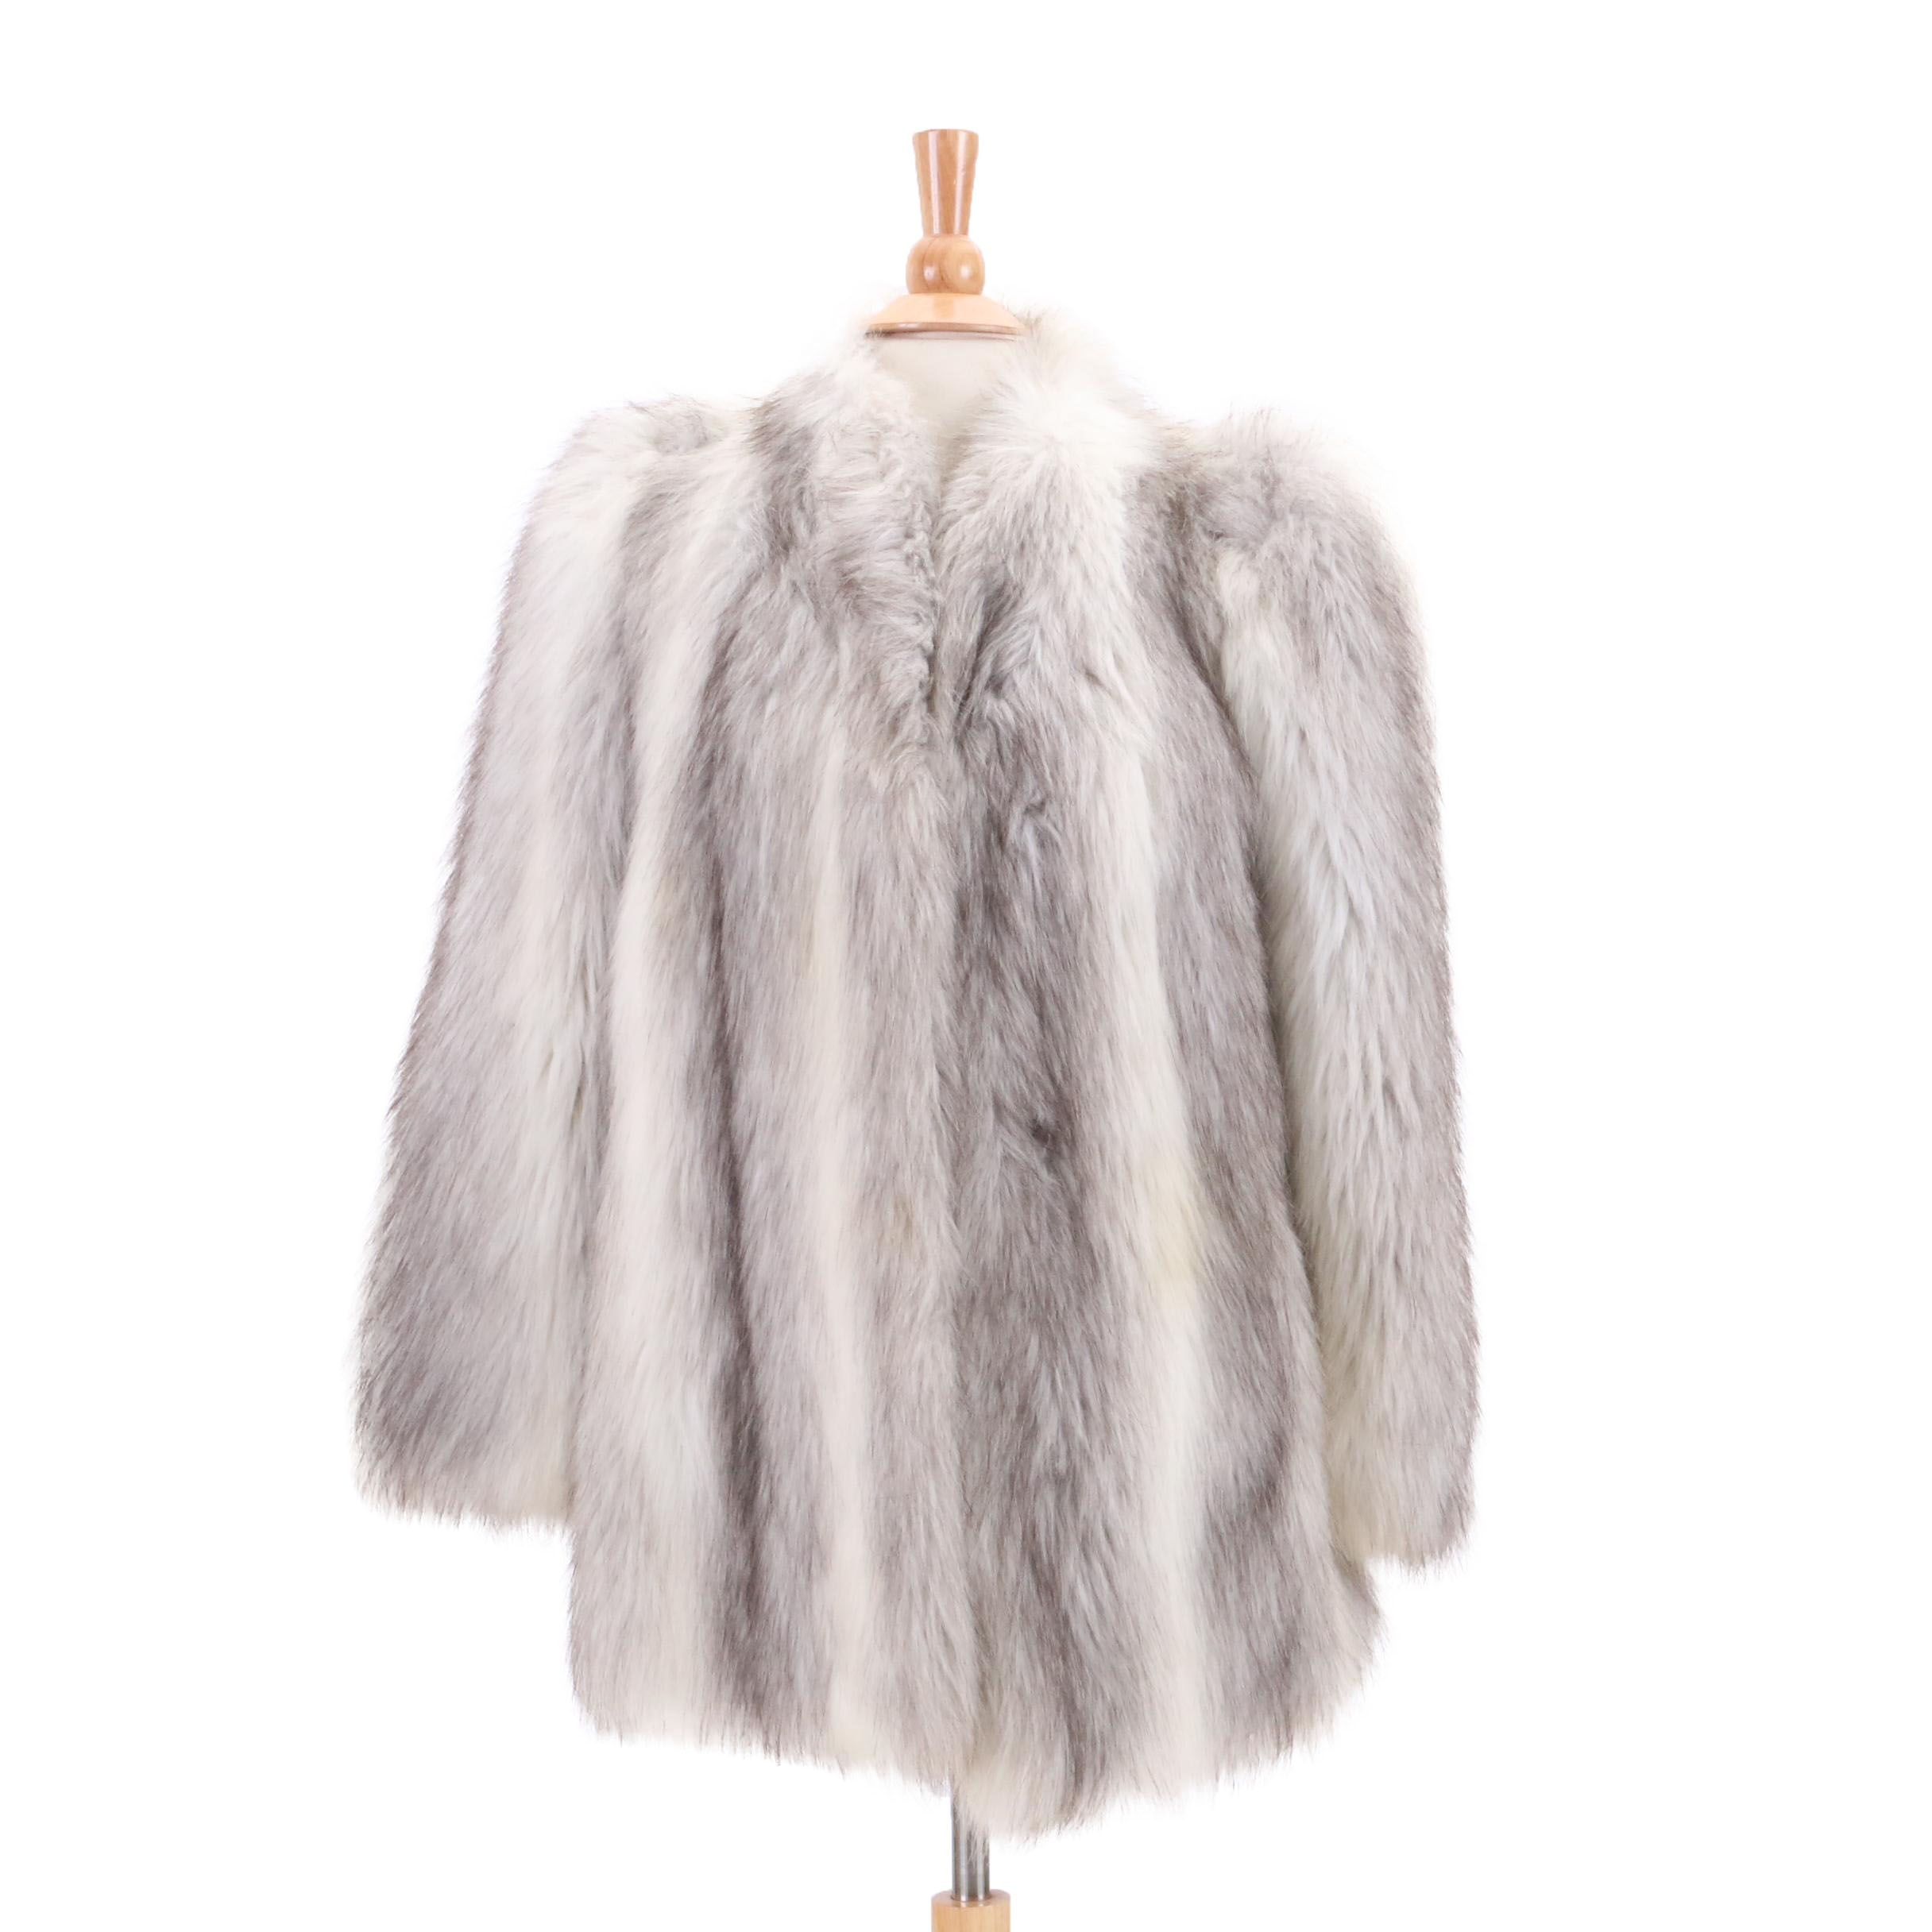 Casper Faux Fox Fur Coat